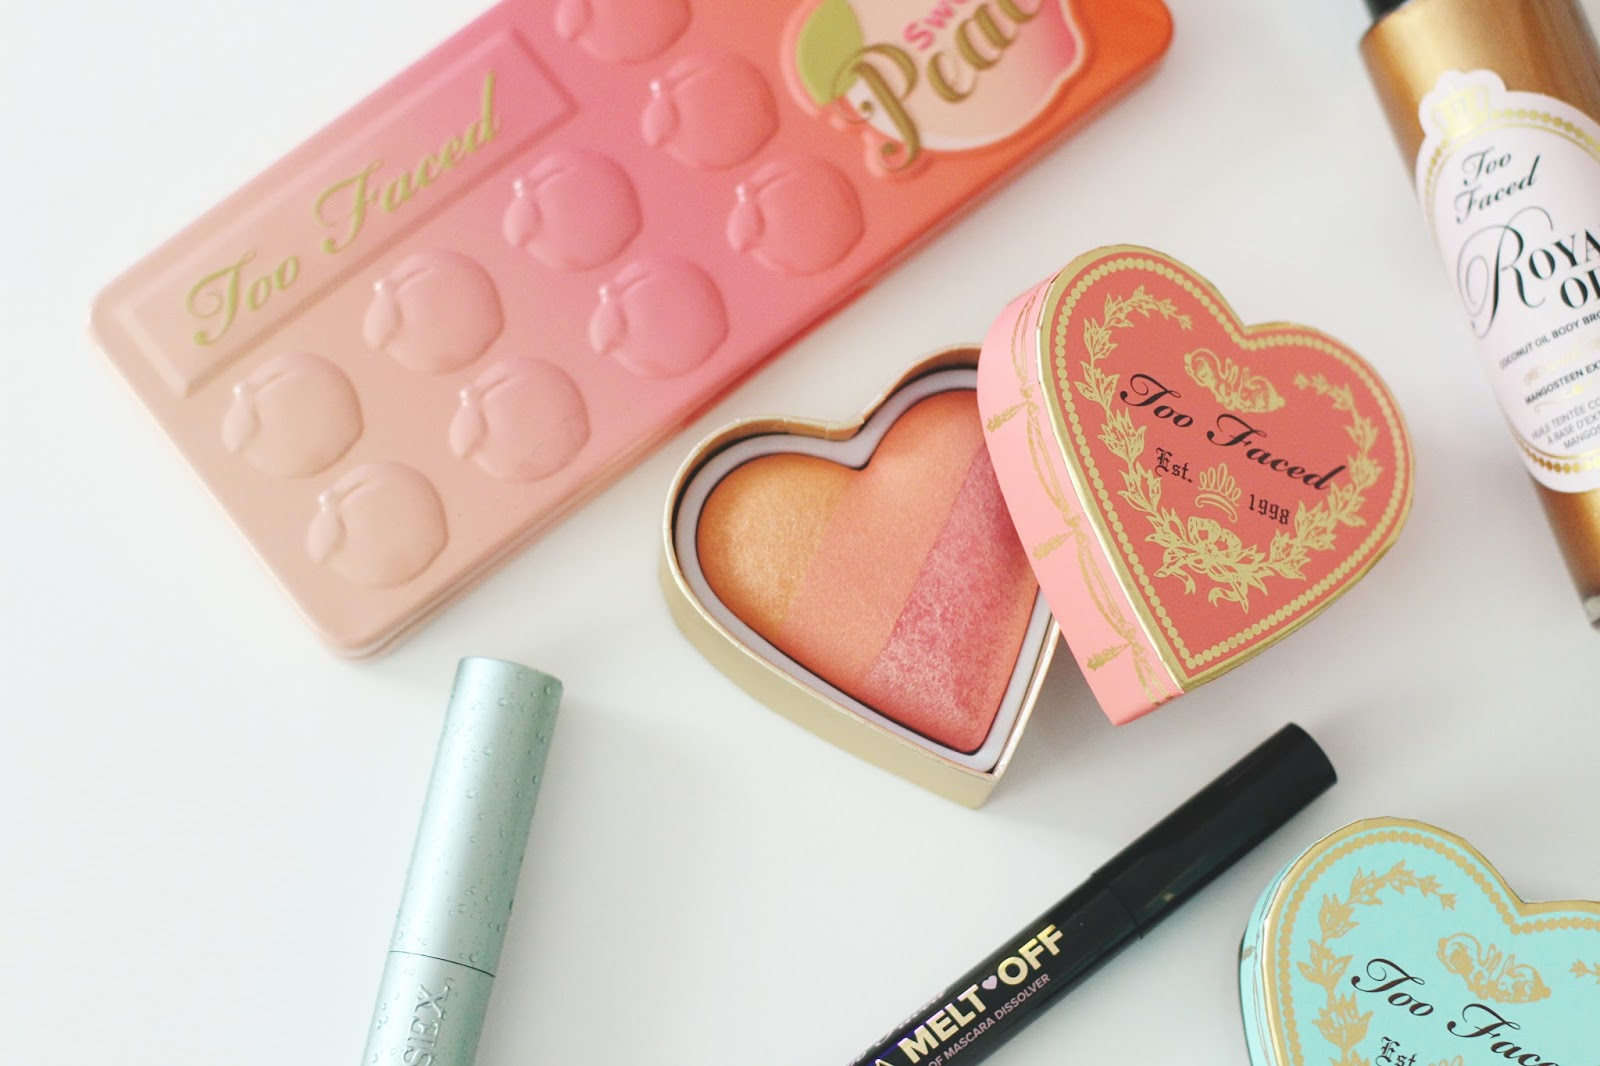 Sweetheart's perfect Flush Blush Too Faced